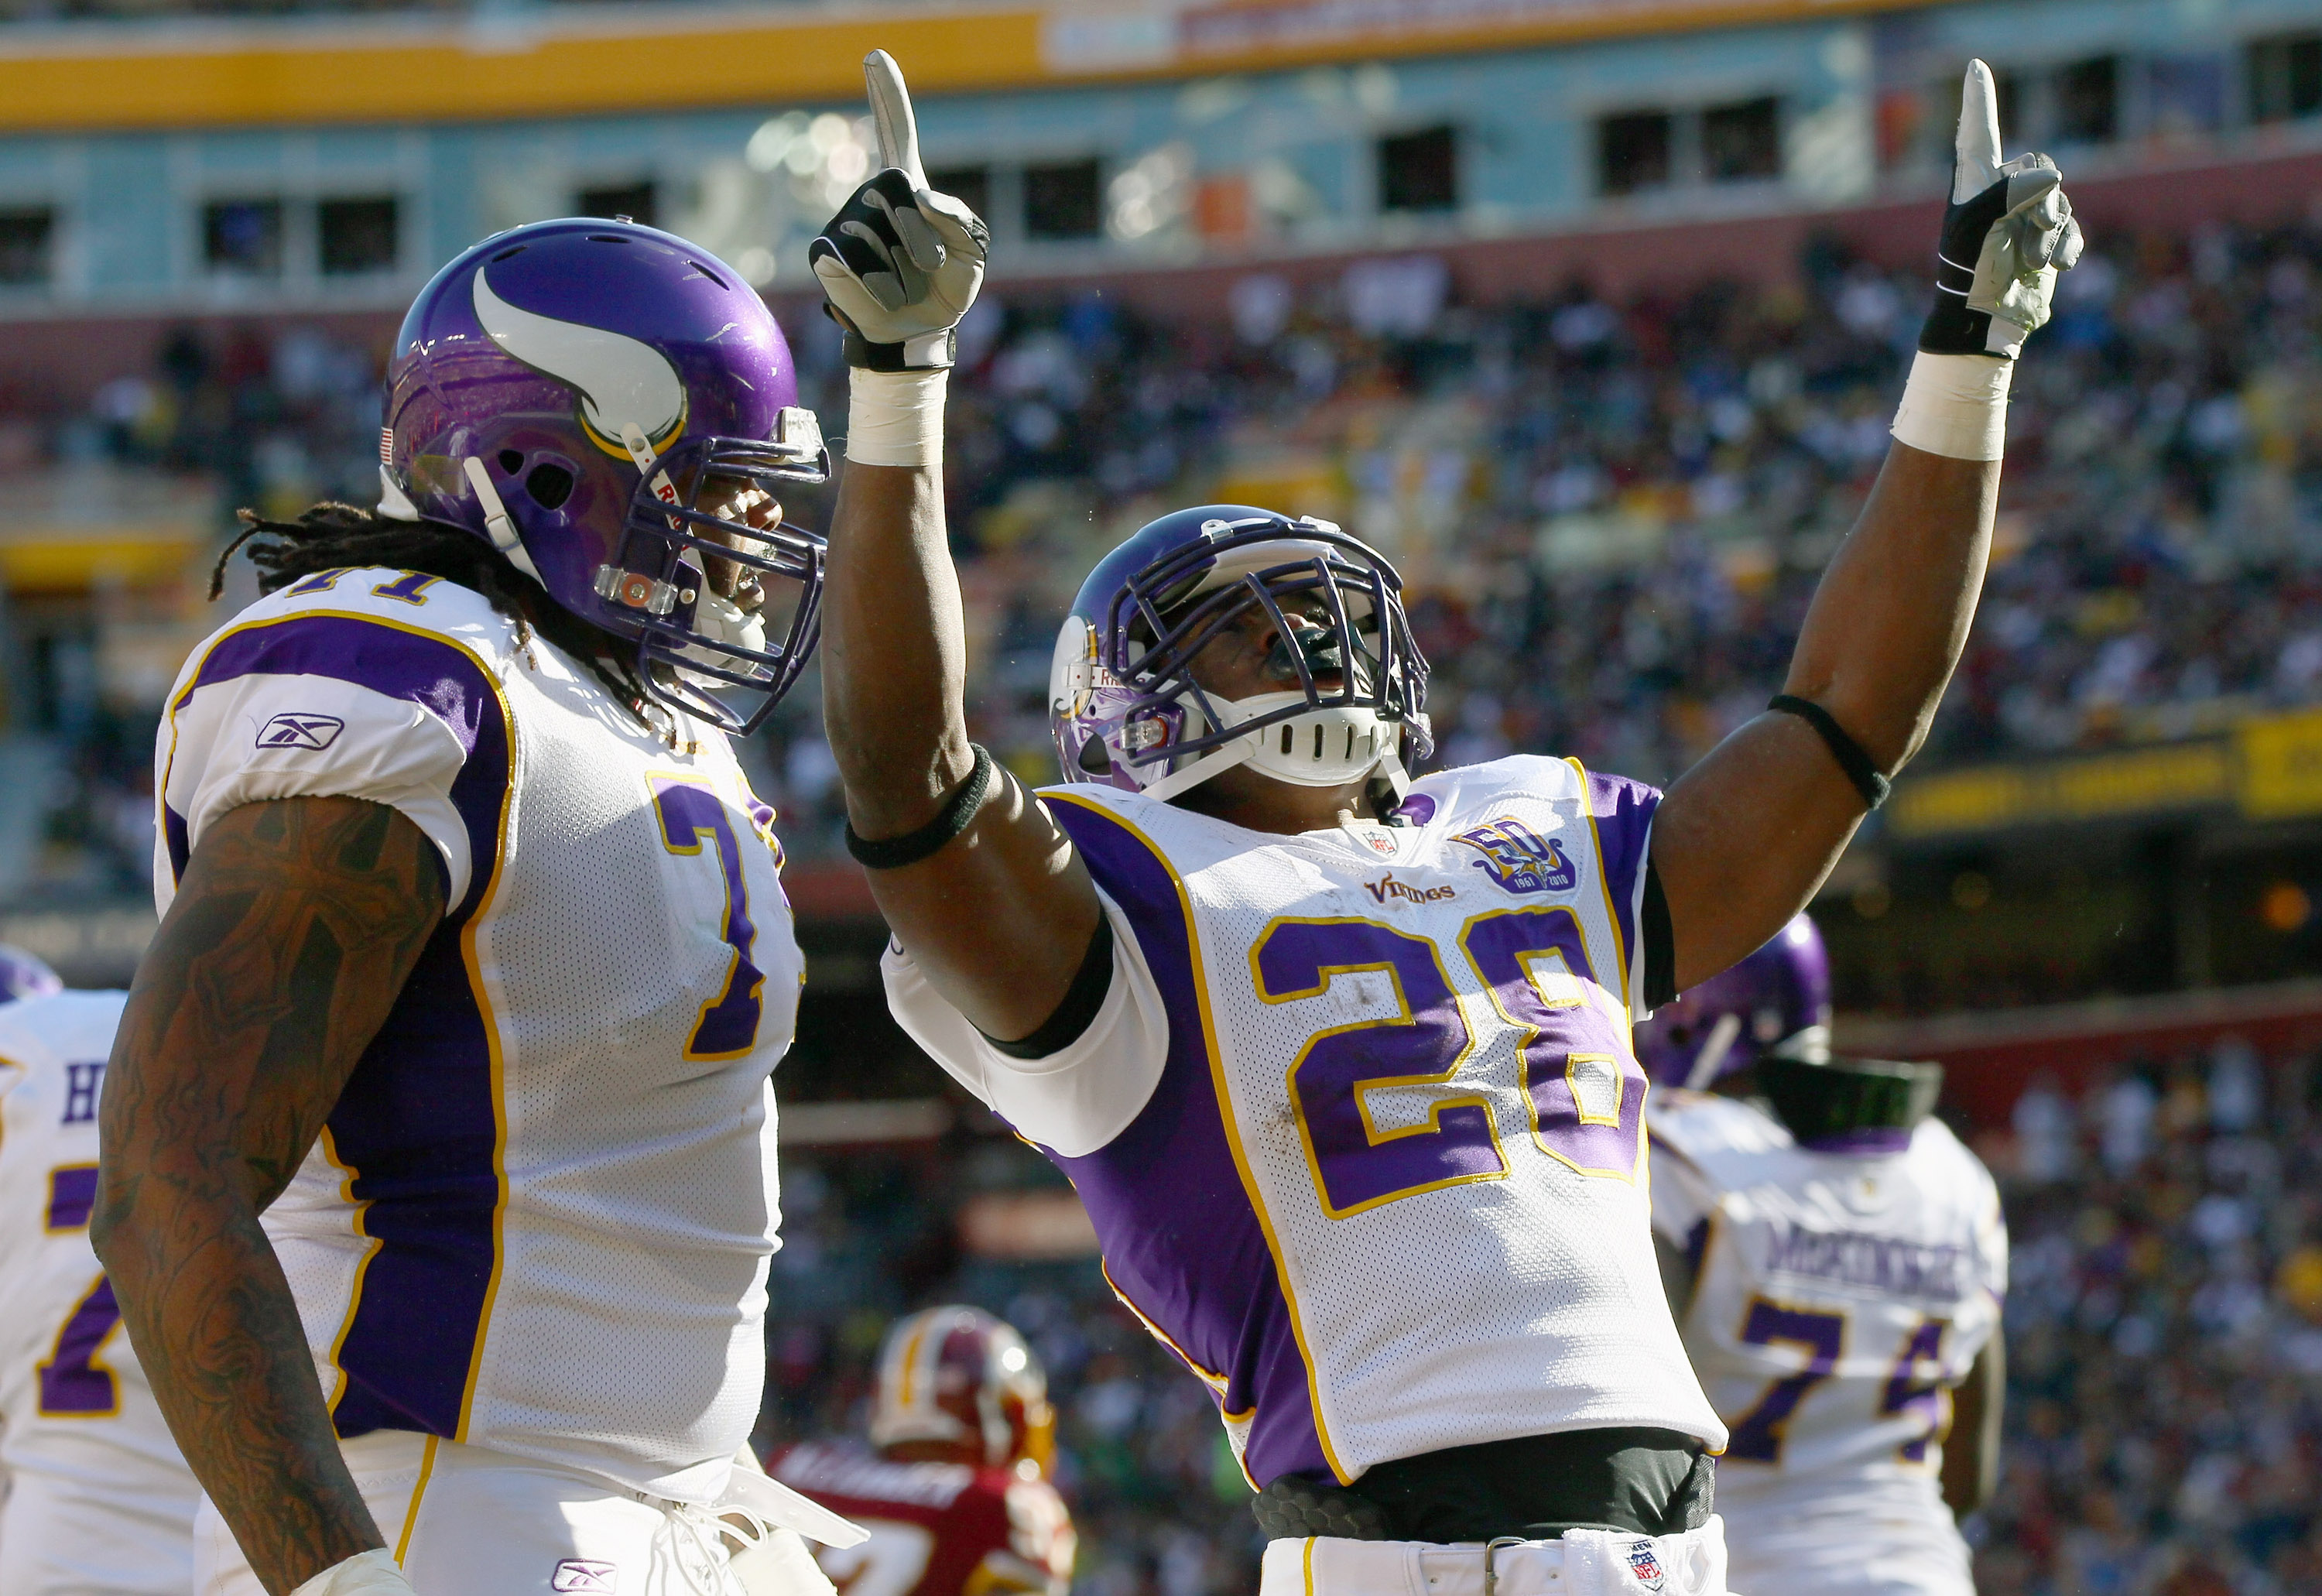 LANDOVER, MD - NOVEMBER 28:  Adrian Peterson #28 of the Minnesota Vikings celebrates after scoring a touchdown in the first quarter against the Washington Redskins at FedExField November 28, 2010 in Landover, Maryland.  (Photo by Win McNamee/Getty Images)